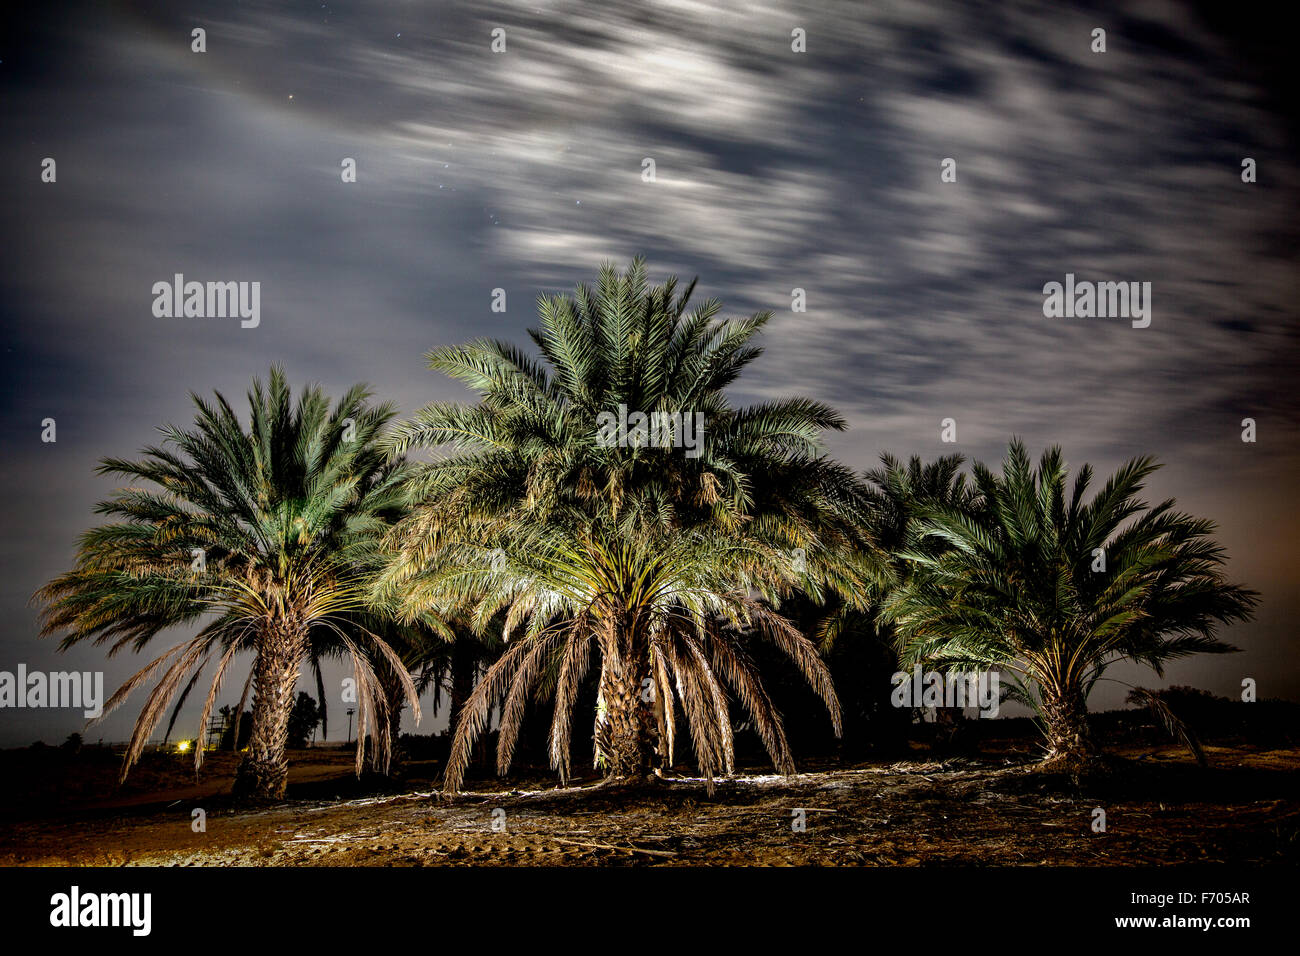 Date Grove at night - Stock Image